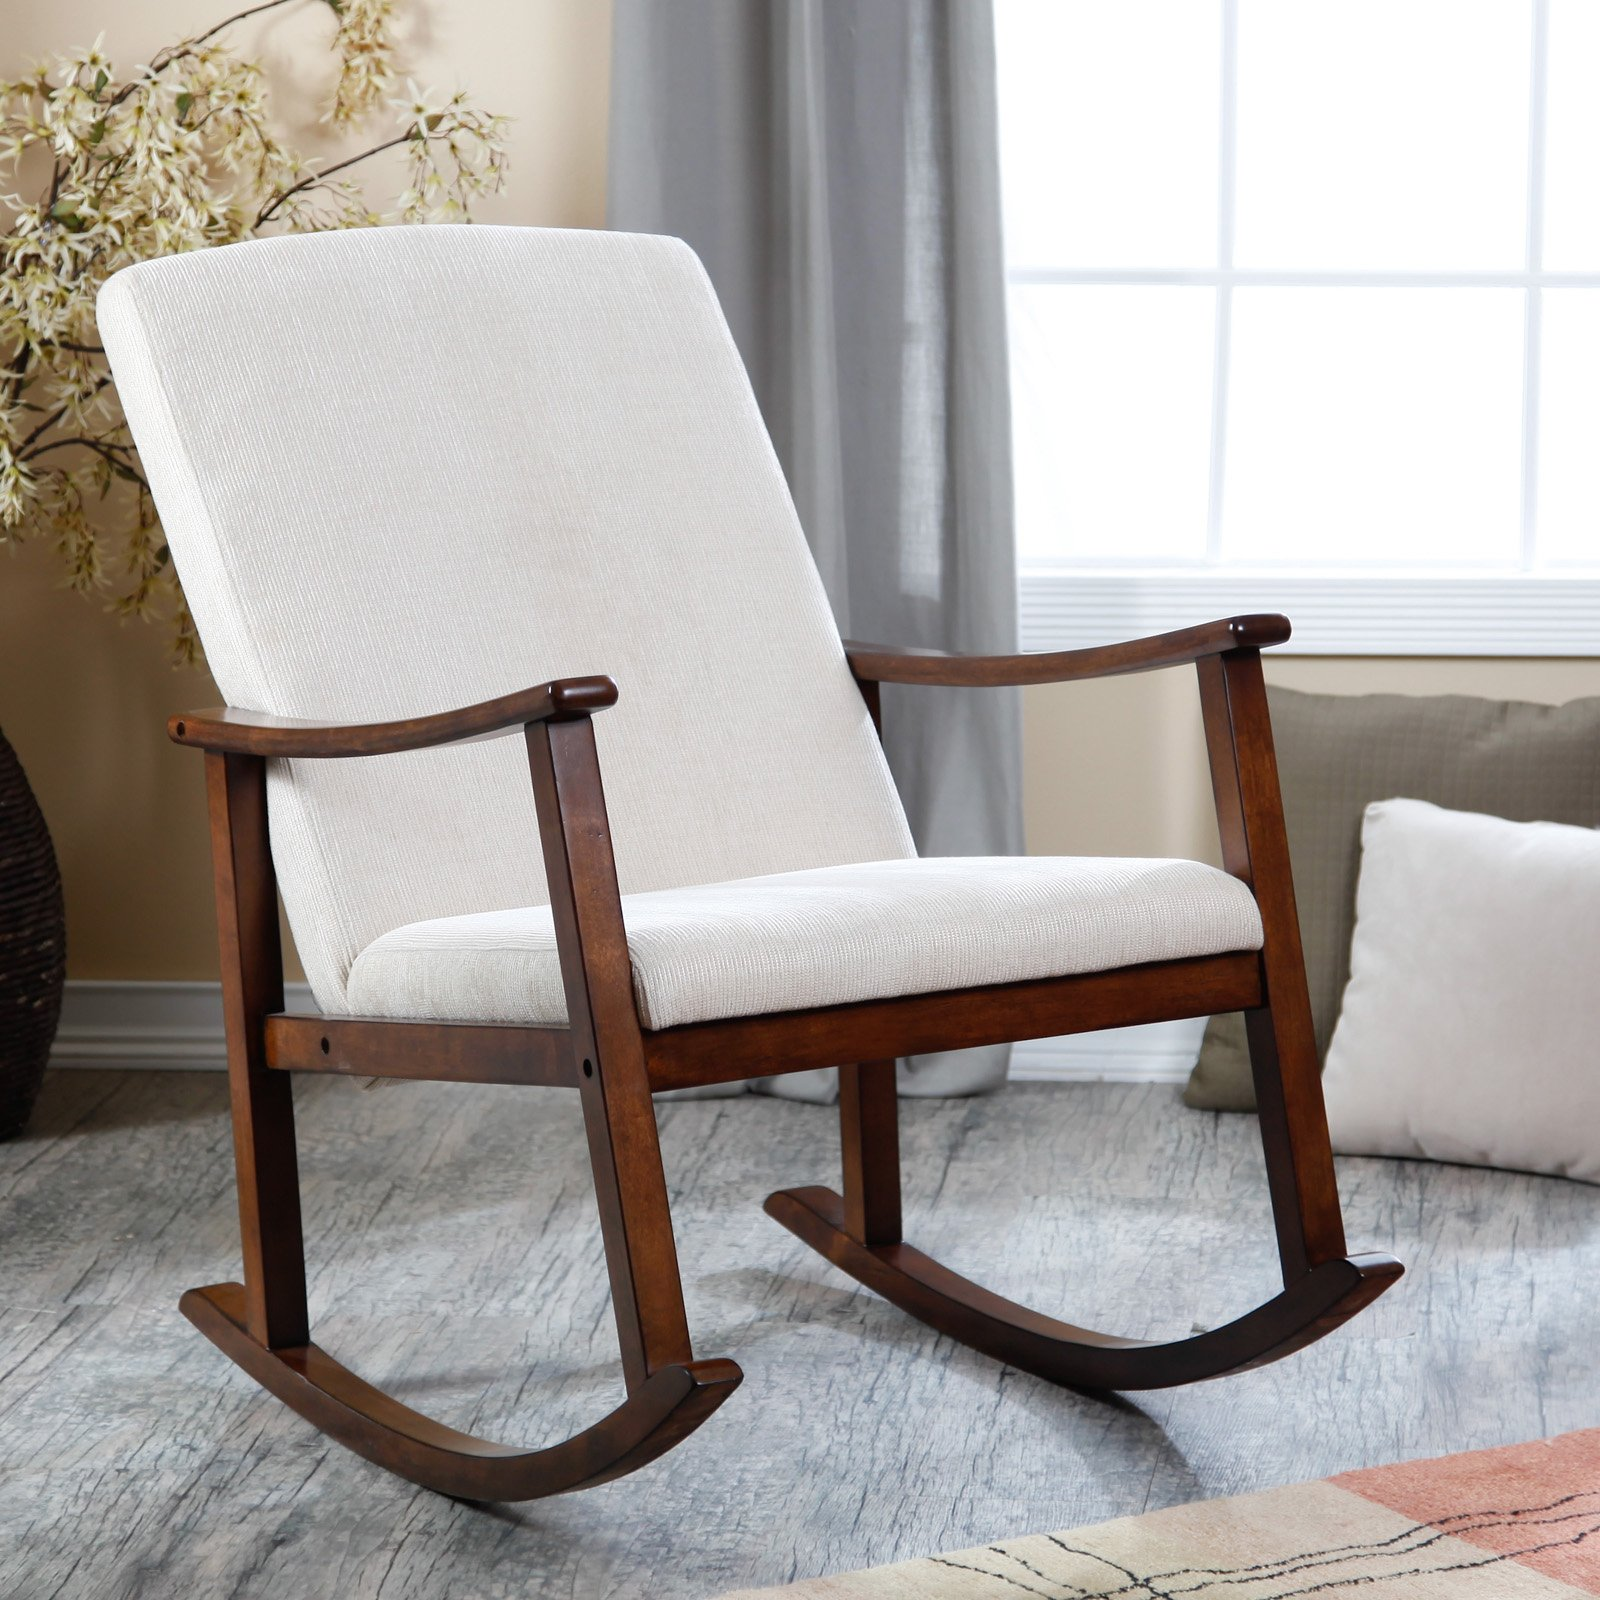 Nursery Rocking Chair: Cuddles Baby's Like Mothers Arm